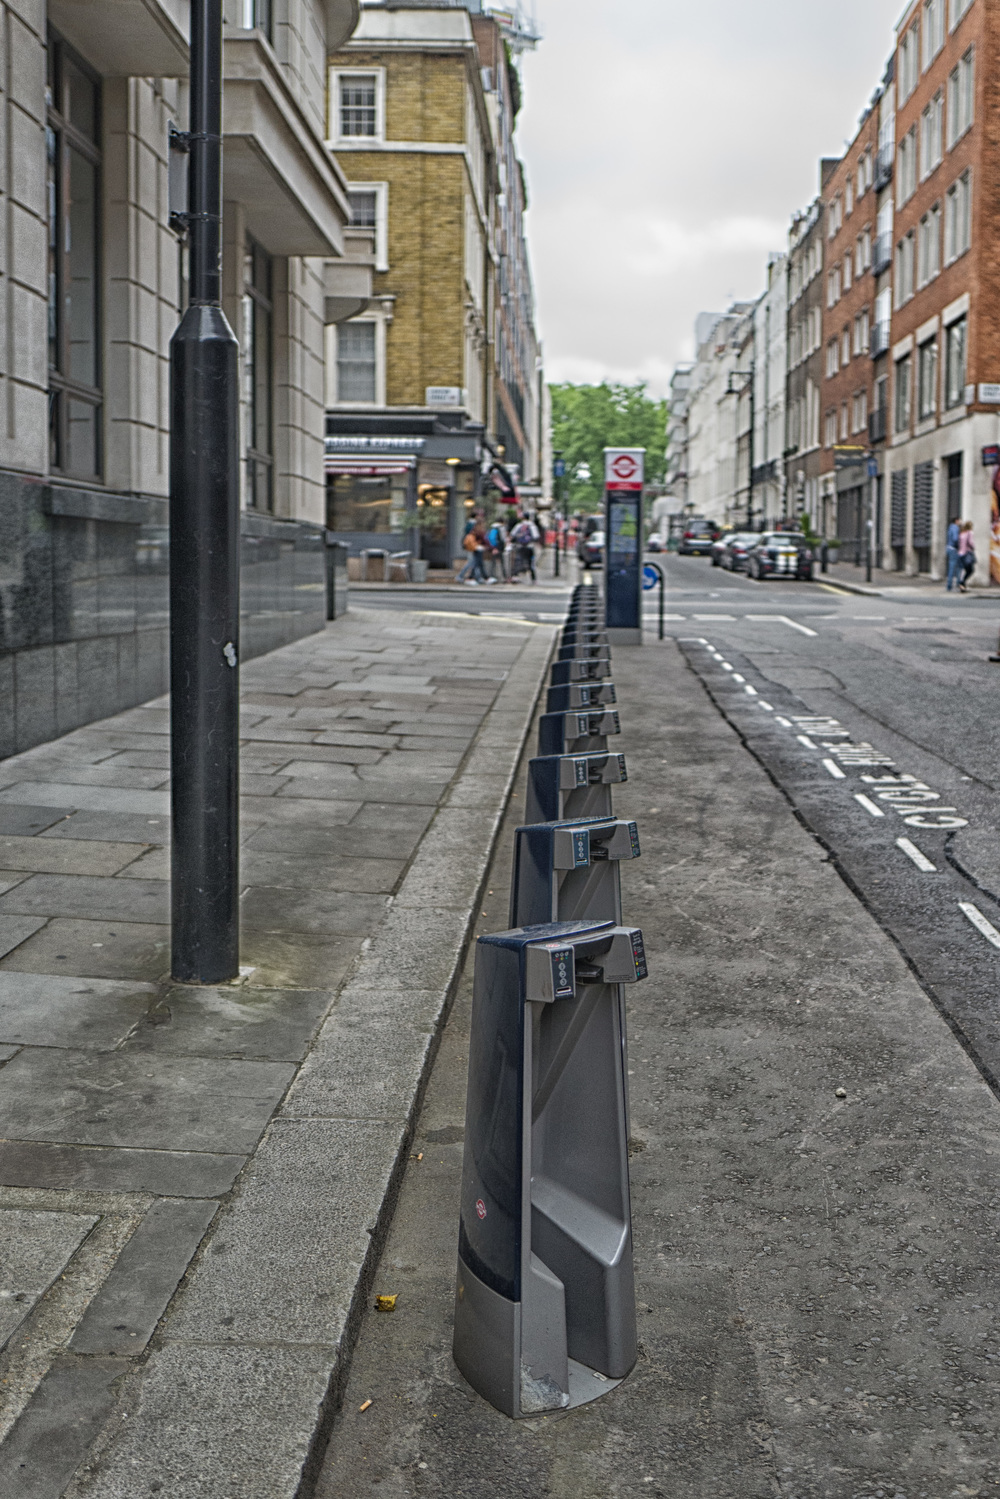 Meanwhile, on the deserted streets of nearby Mayfair, Boris bikes had disappeared. Never has Boris been so booked out.